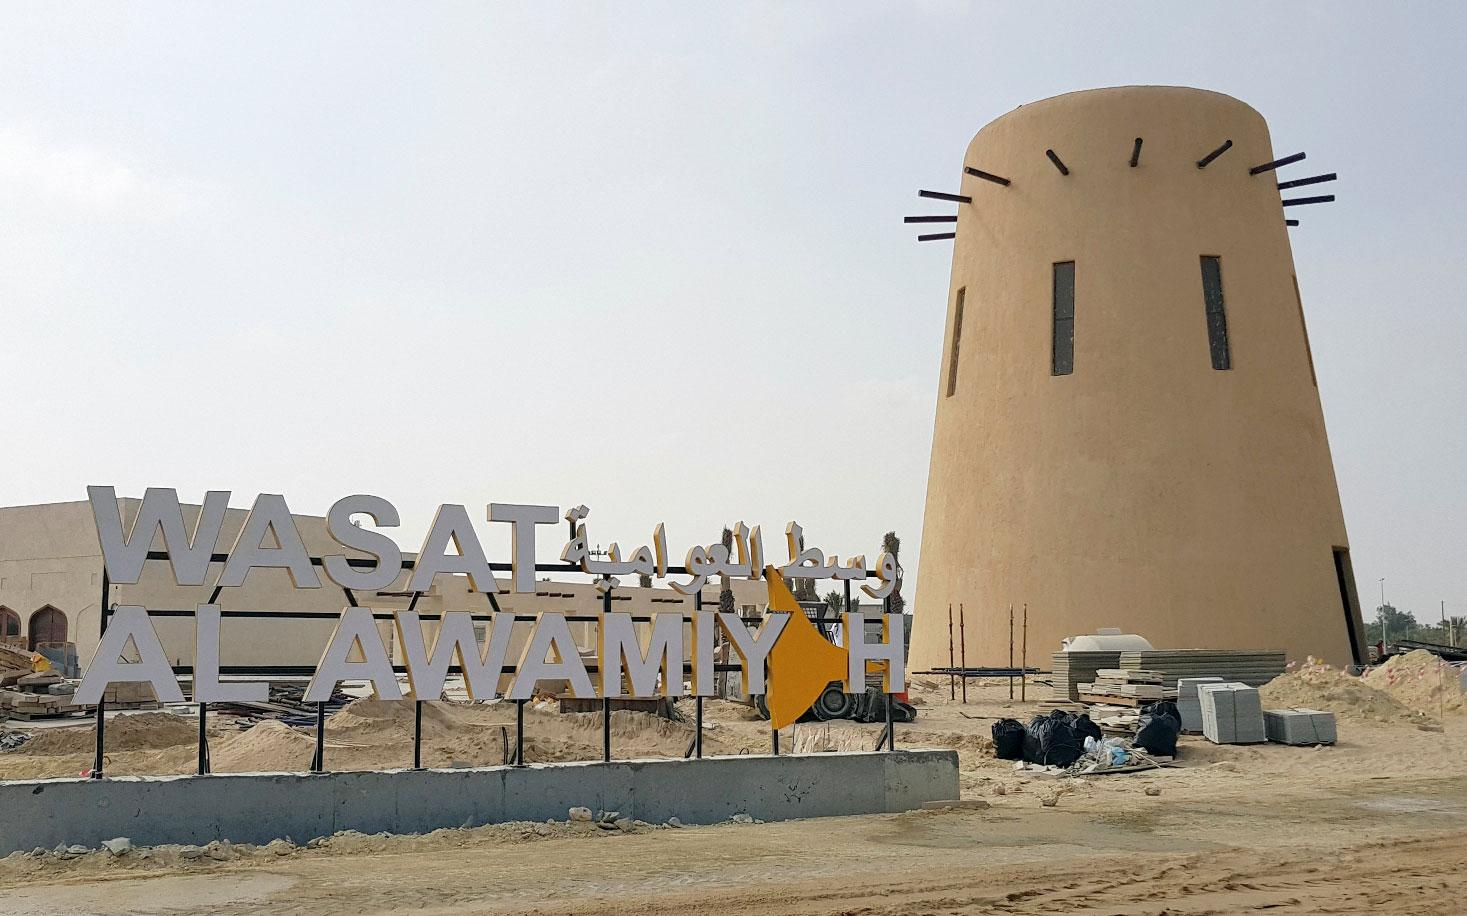 A sign is seen at a new Saudi state-run development project in the old quarter of Shi'ite town Awamiya, Saudi Arabia on January 8, 2019.